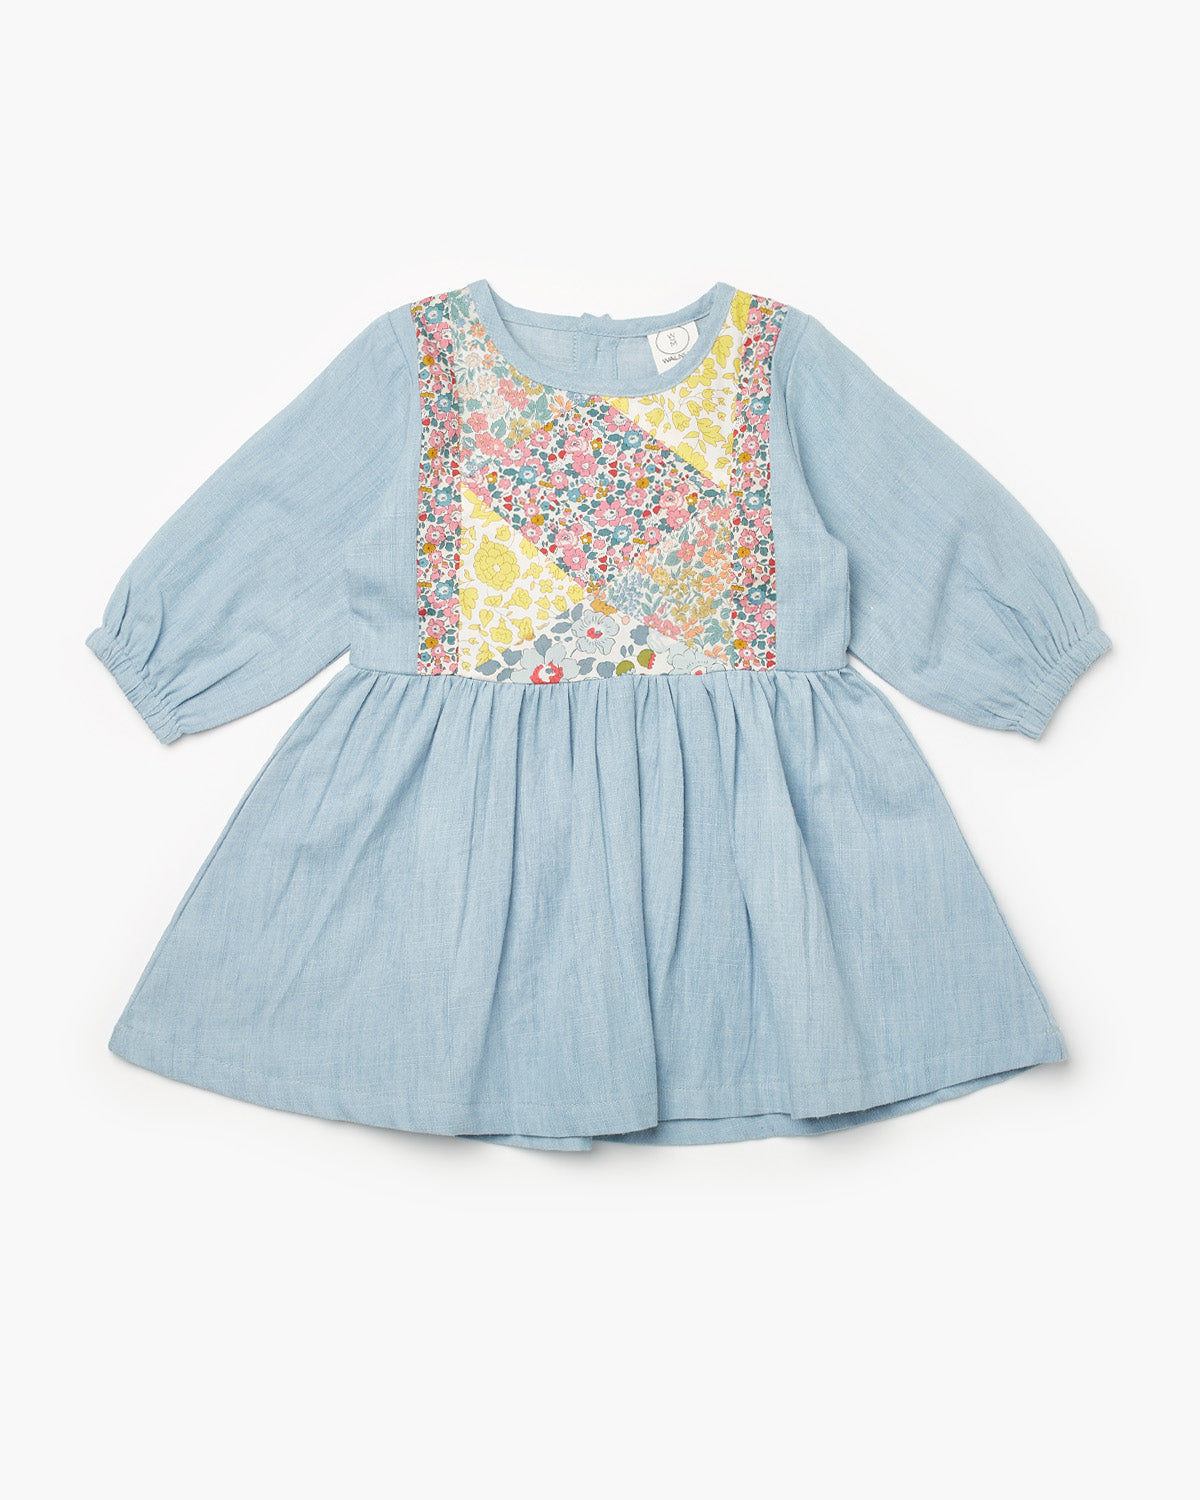 Fleur Blouson Liberty Print Dress - D'Anjo Sky Multi